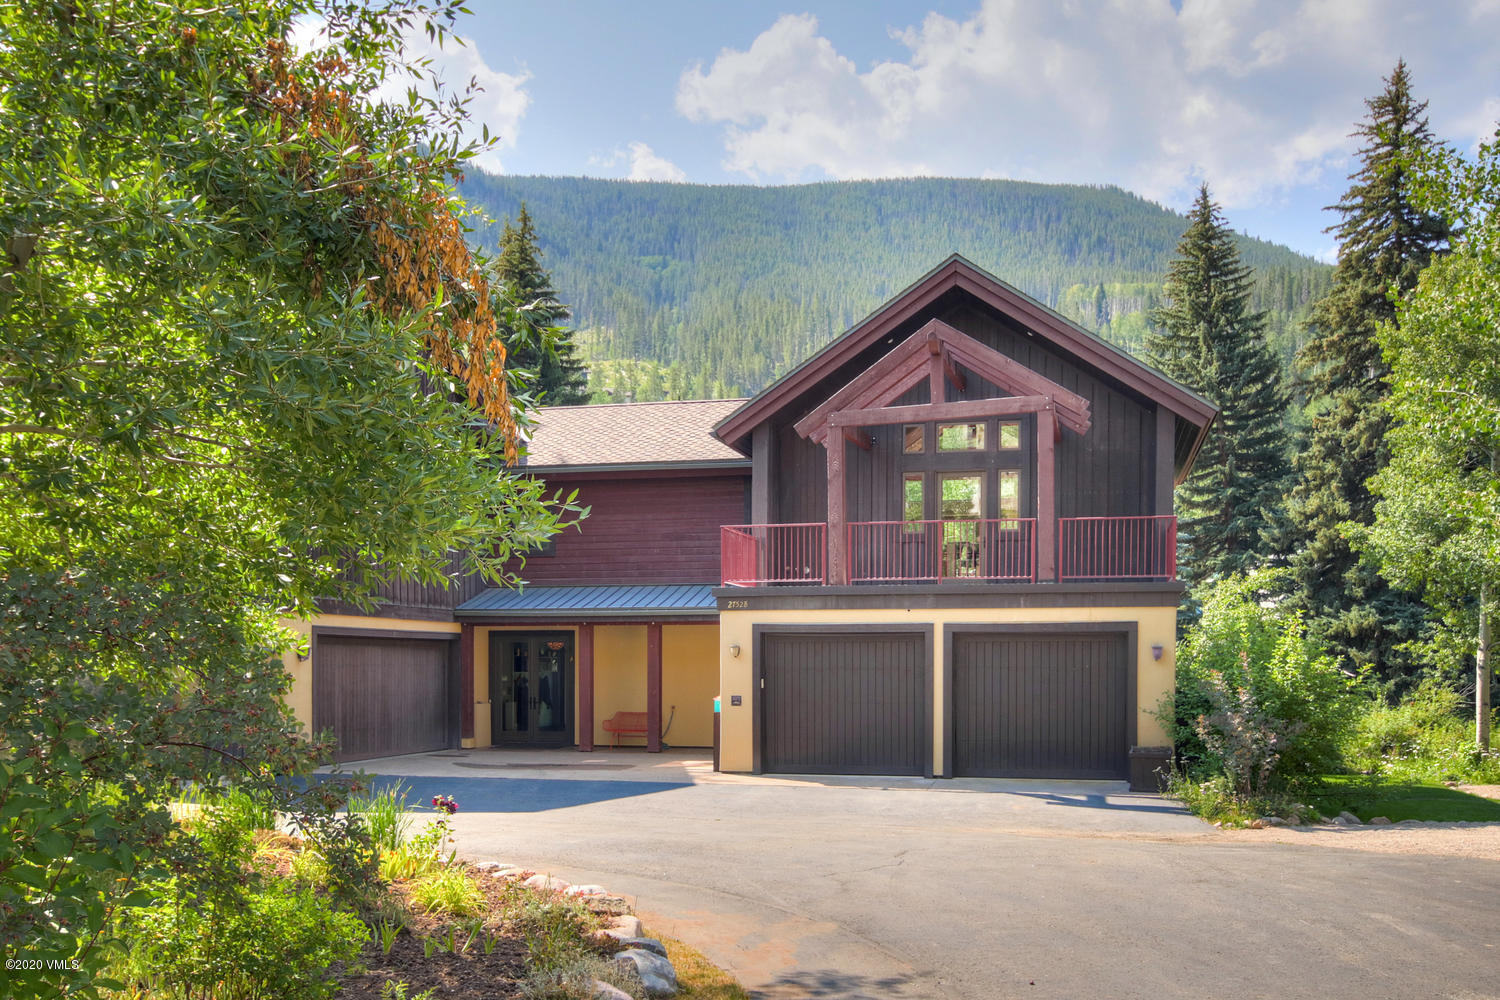 Great one bedroom duplex right on Gore Creek with lots of storage and spaces.  Attached 2 car garage.  Ready to move into.  Deed restricted.  Must work in Eagle County full time.